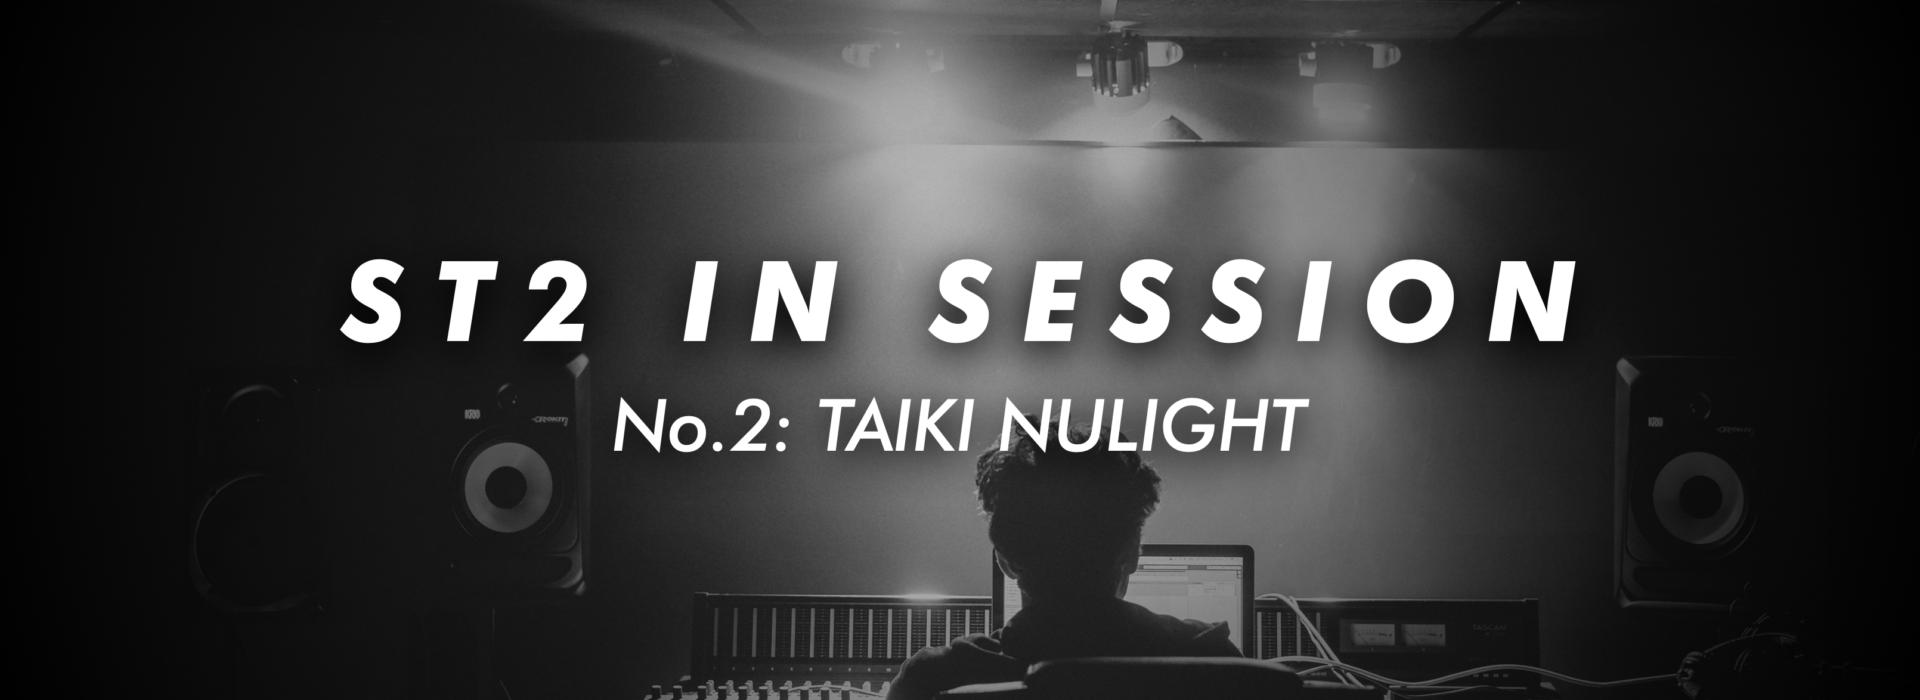 ST2 In Session No. 2: TAIKI NULIGHT